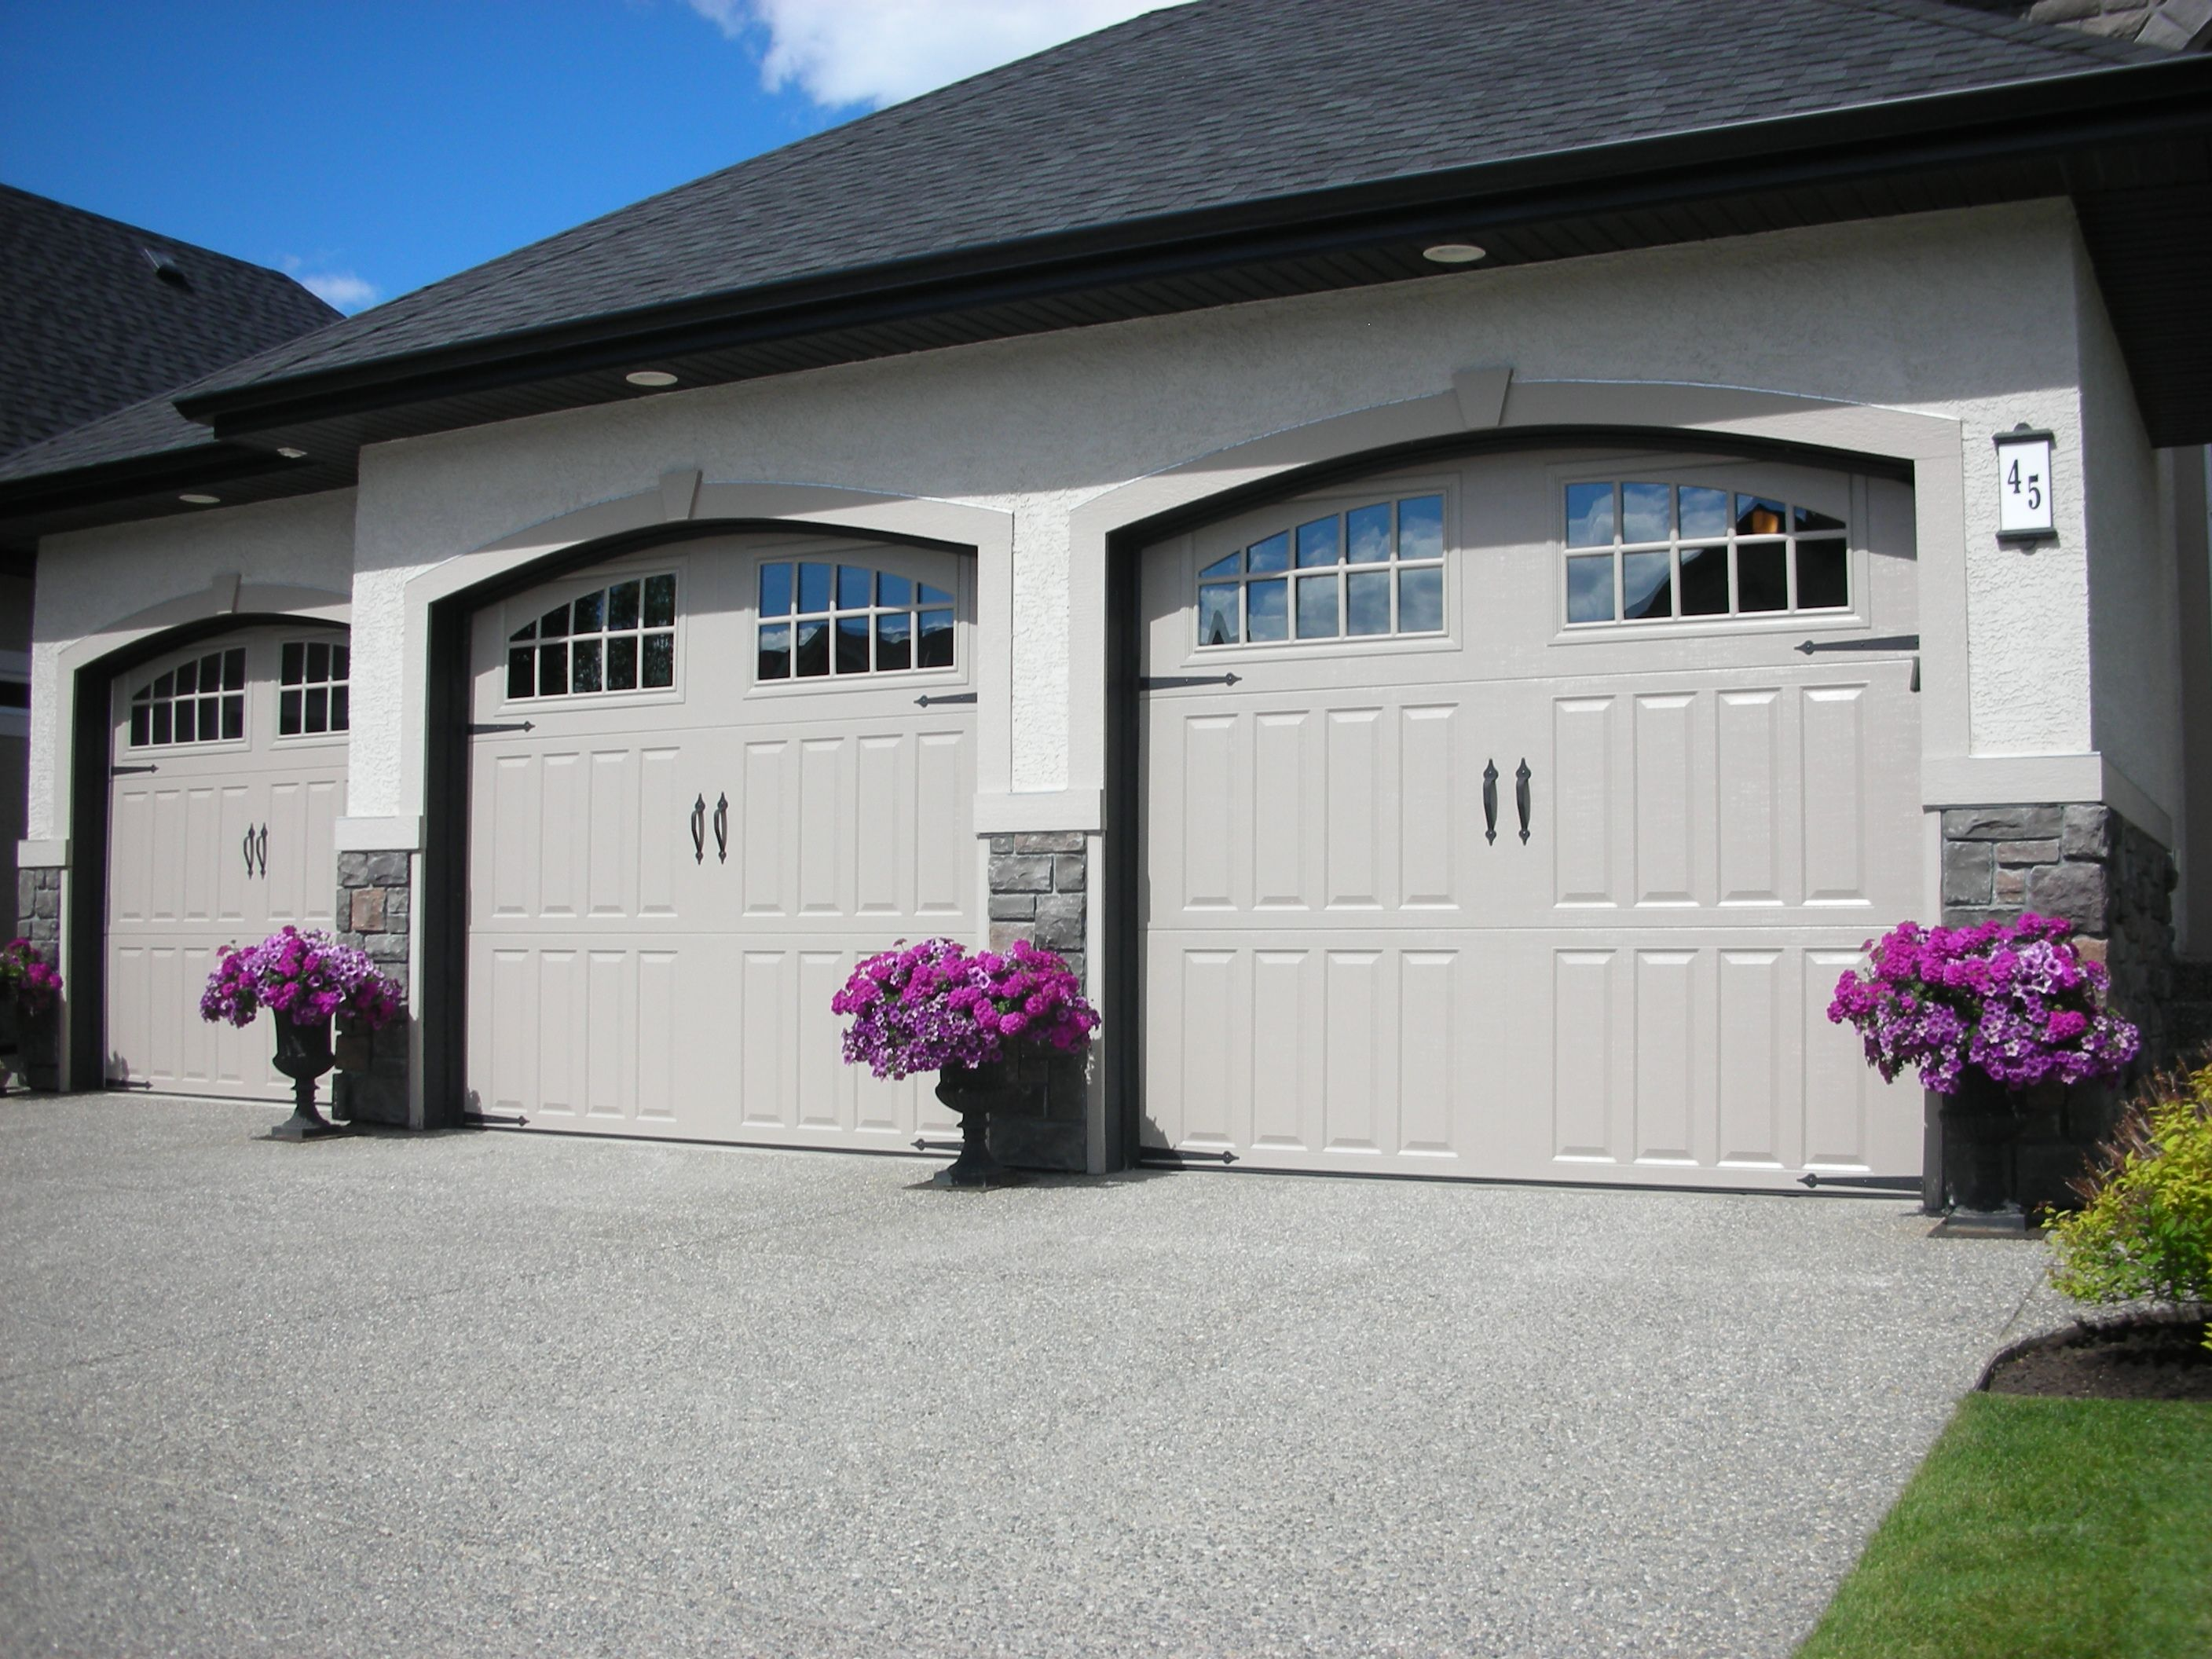 Amarr classica bordeaux garage door with seine windows visit www amarr com